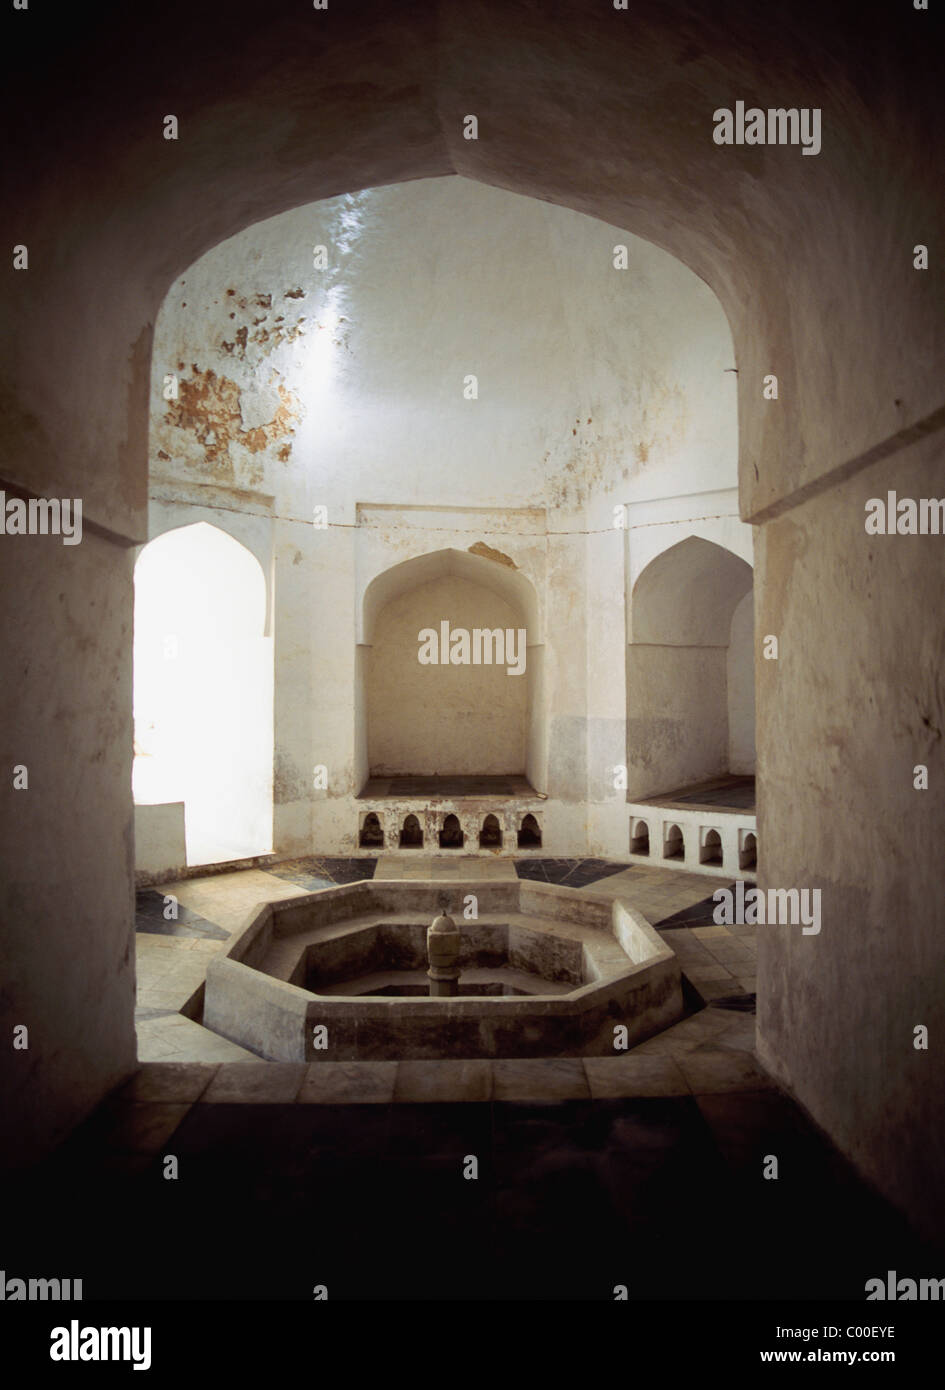 Bagni Persiani Di Hamamni Persian Baths Immagini Persian Baths Fotos Stock Alamy